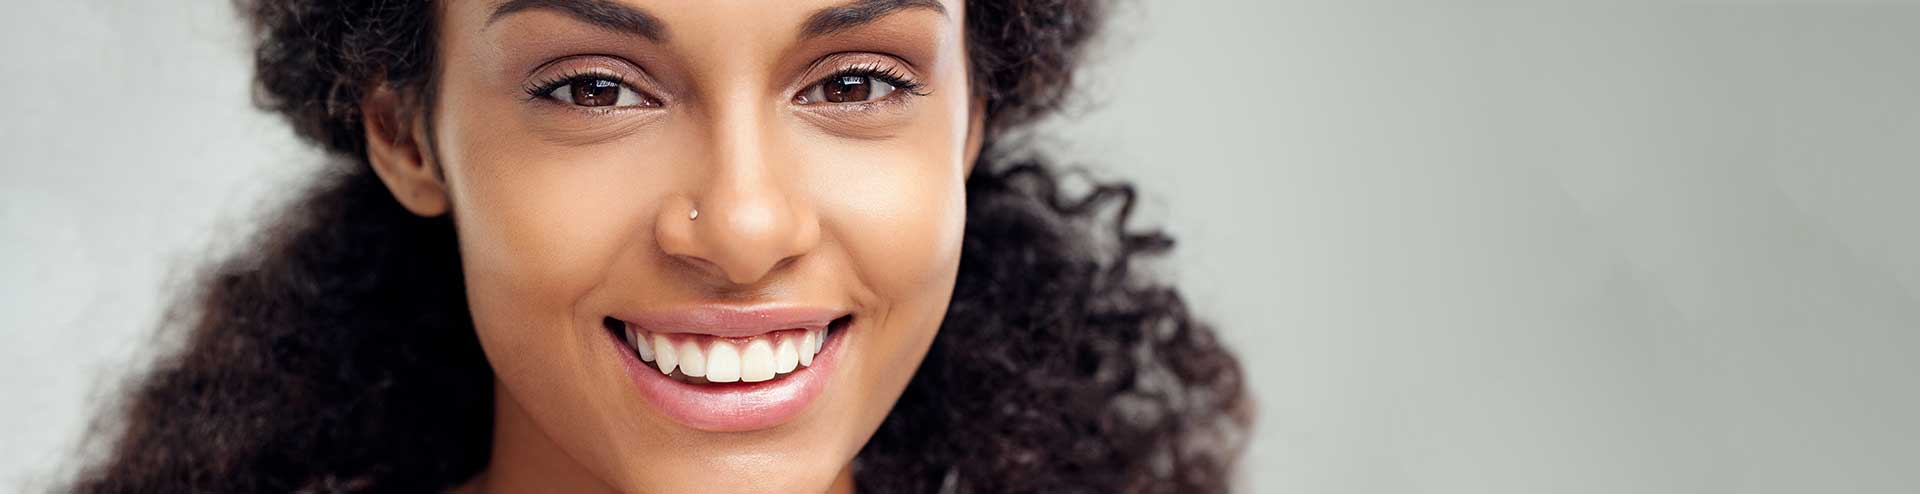 Contact us about plastic surgery and skincare